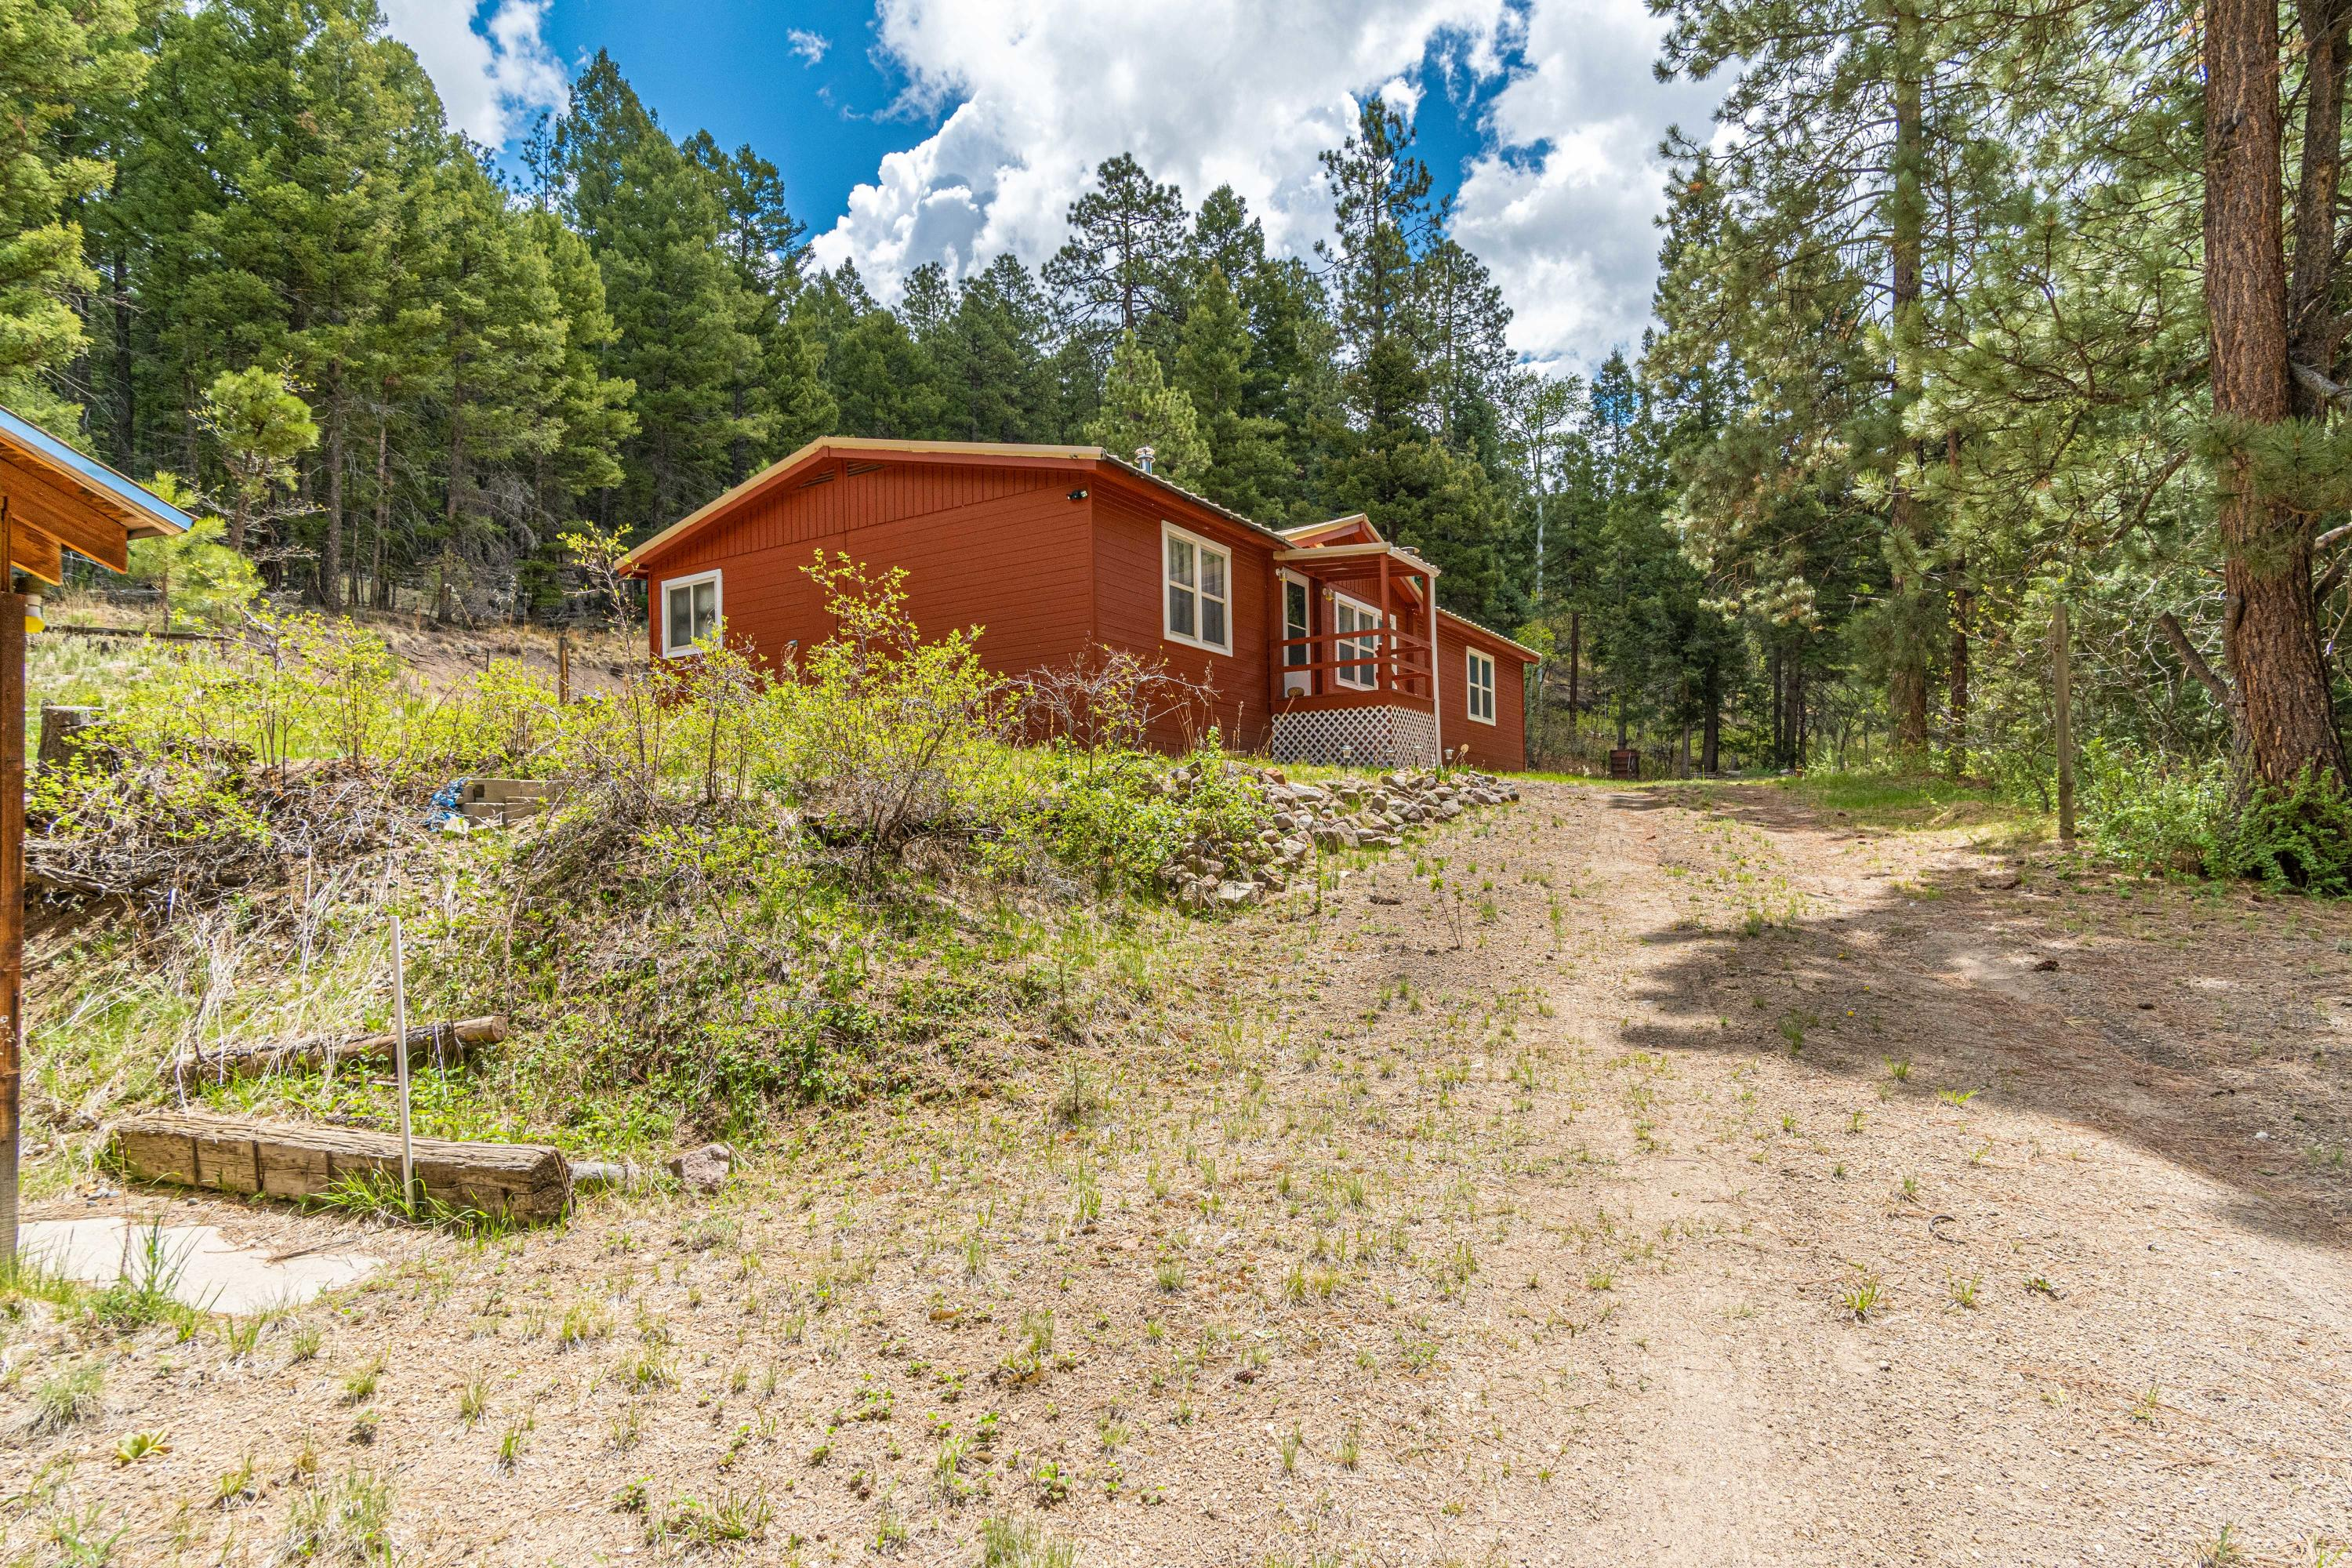 Inspections in hand and ready to sell! Enjoy room inside and out in this 1600+ sq.ft. home on almost 2.5 acres in the Sierra Los Pinos subdivision of the serene Jemez Mountains. Three bedrooms, two bathrooms, well-maintained interior, w/ both a pellet and wood-burning stoves. Multiple cosmetic updates inside & out in last 4 years including  fresh paint on the exterior of the home, new front porch, & new steps in back. Property also boasts a large garage for storing all the equipment, toys, & tools you need to enjoy your new mountain home. Approx. 45 min. from both Los Alamos & US 550 and only 15 minutes from the Valles Caldera National Preserve. NEW furnace 2020 and recently repaired/cleaned ductwork. This home awaits a new owner to love and enjoy it- schedule your private showing today!